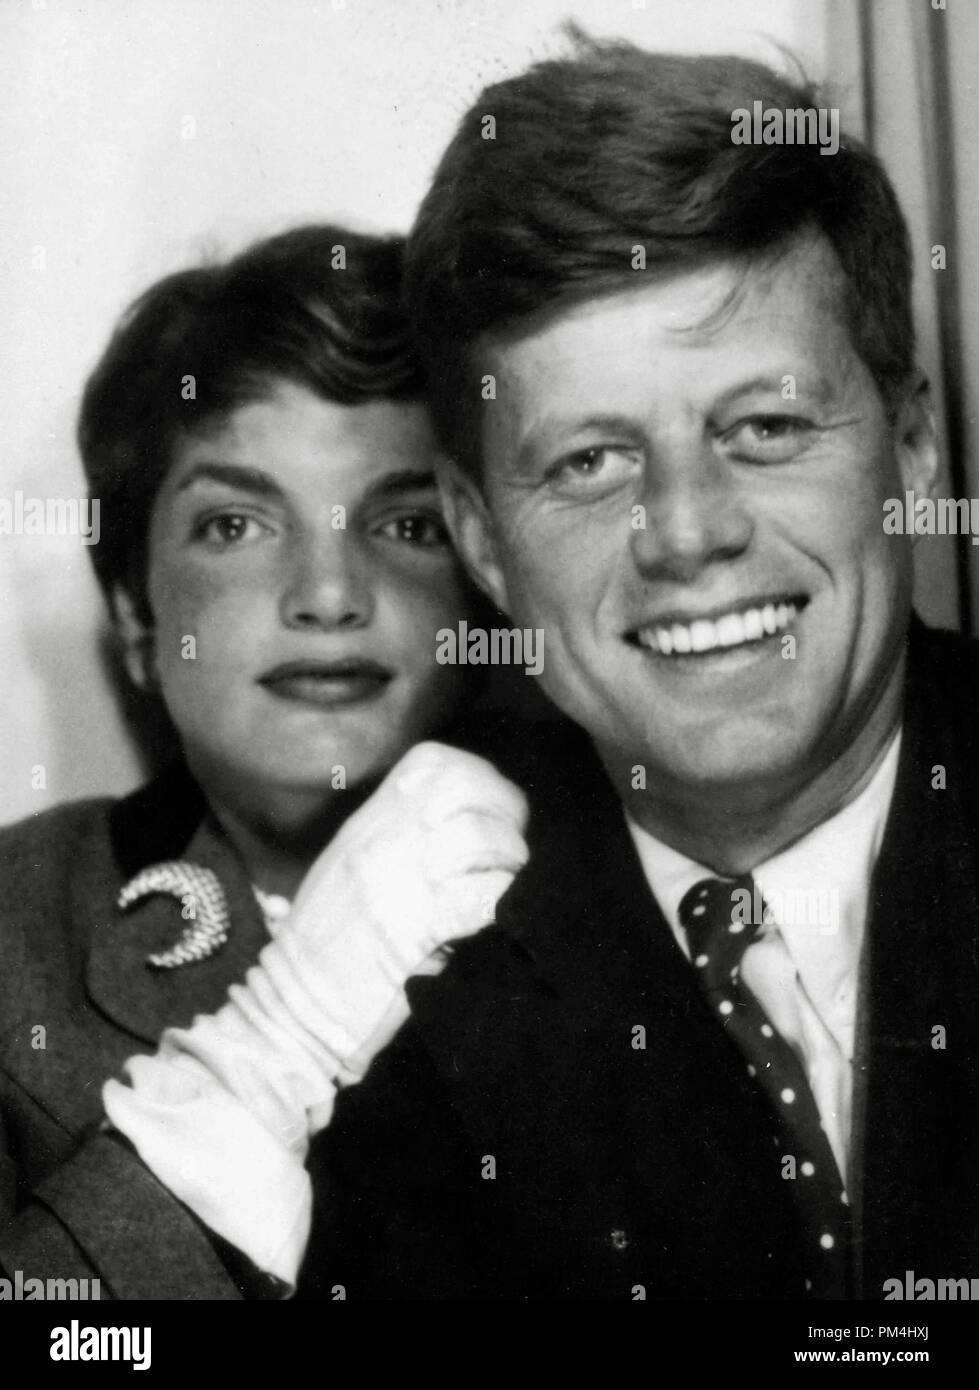 John F. Kennedy with his wife Jacqueline Kennedy ...